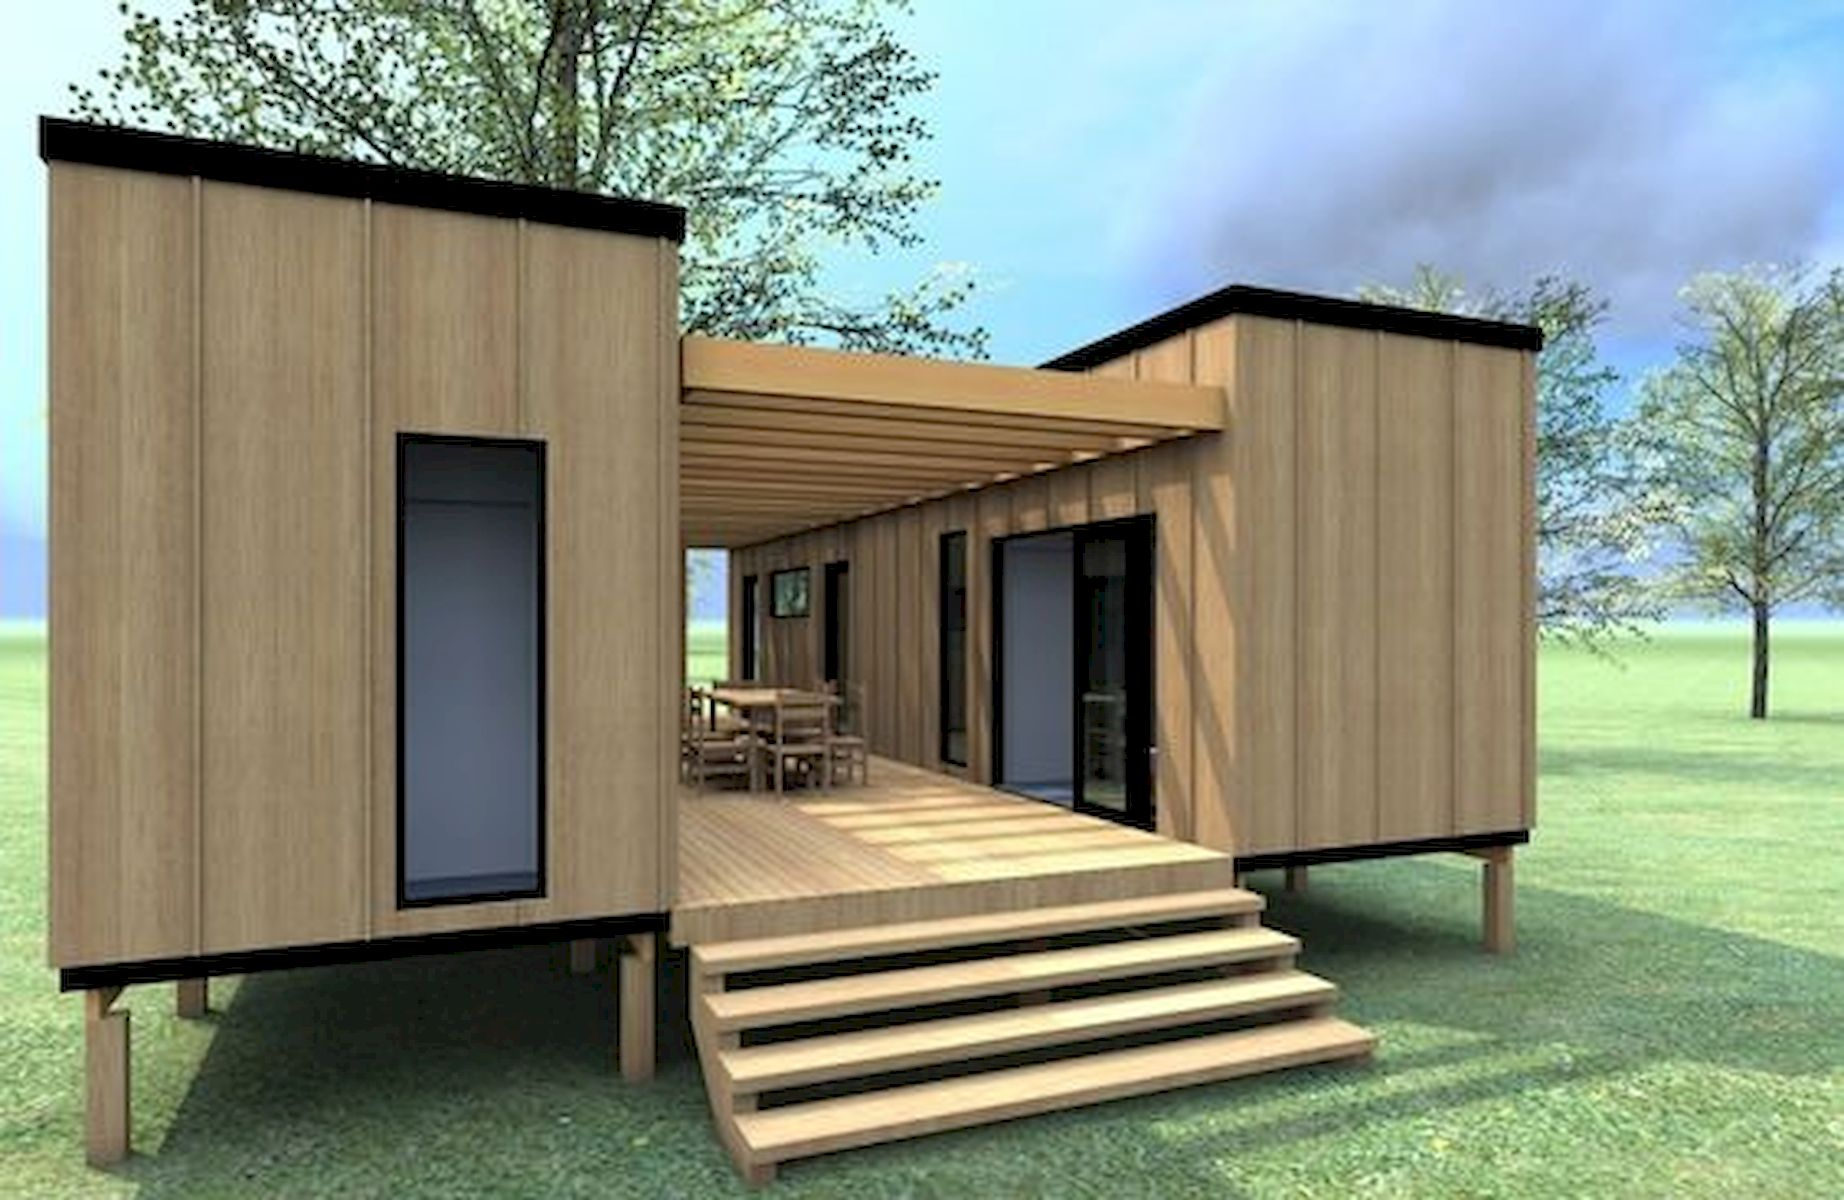 33 Awesome Container House Plans Design Ideas (21) - artmyideas on ideas for dogs, ideas for diy, ideas for holidays, ideas for military, ideas for woodworking, ideas for marketing, ideas for design, ideas for fishing, ideas for dream houses, ideas for windows, ideas for roofing, ideas for swimming pools, ideas for shopping, ideas for lighting, ideas for beauty, ideas for weight loss, ideas for tile, ideas for building, ideas for retail, ideas for marriage,